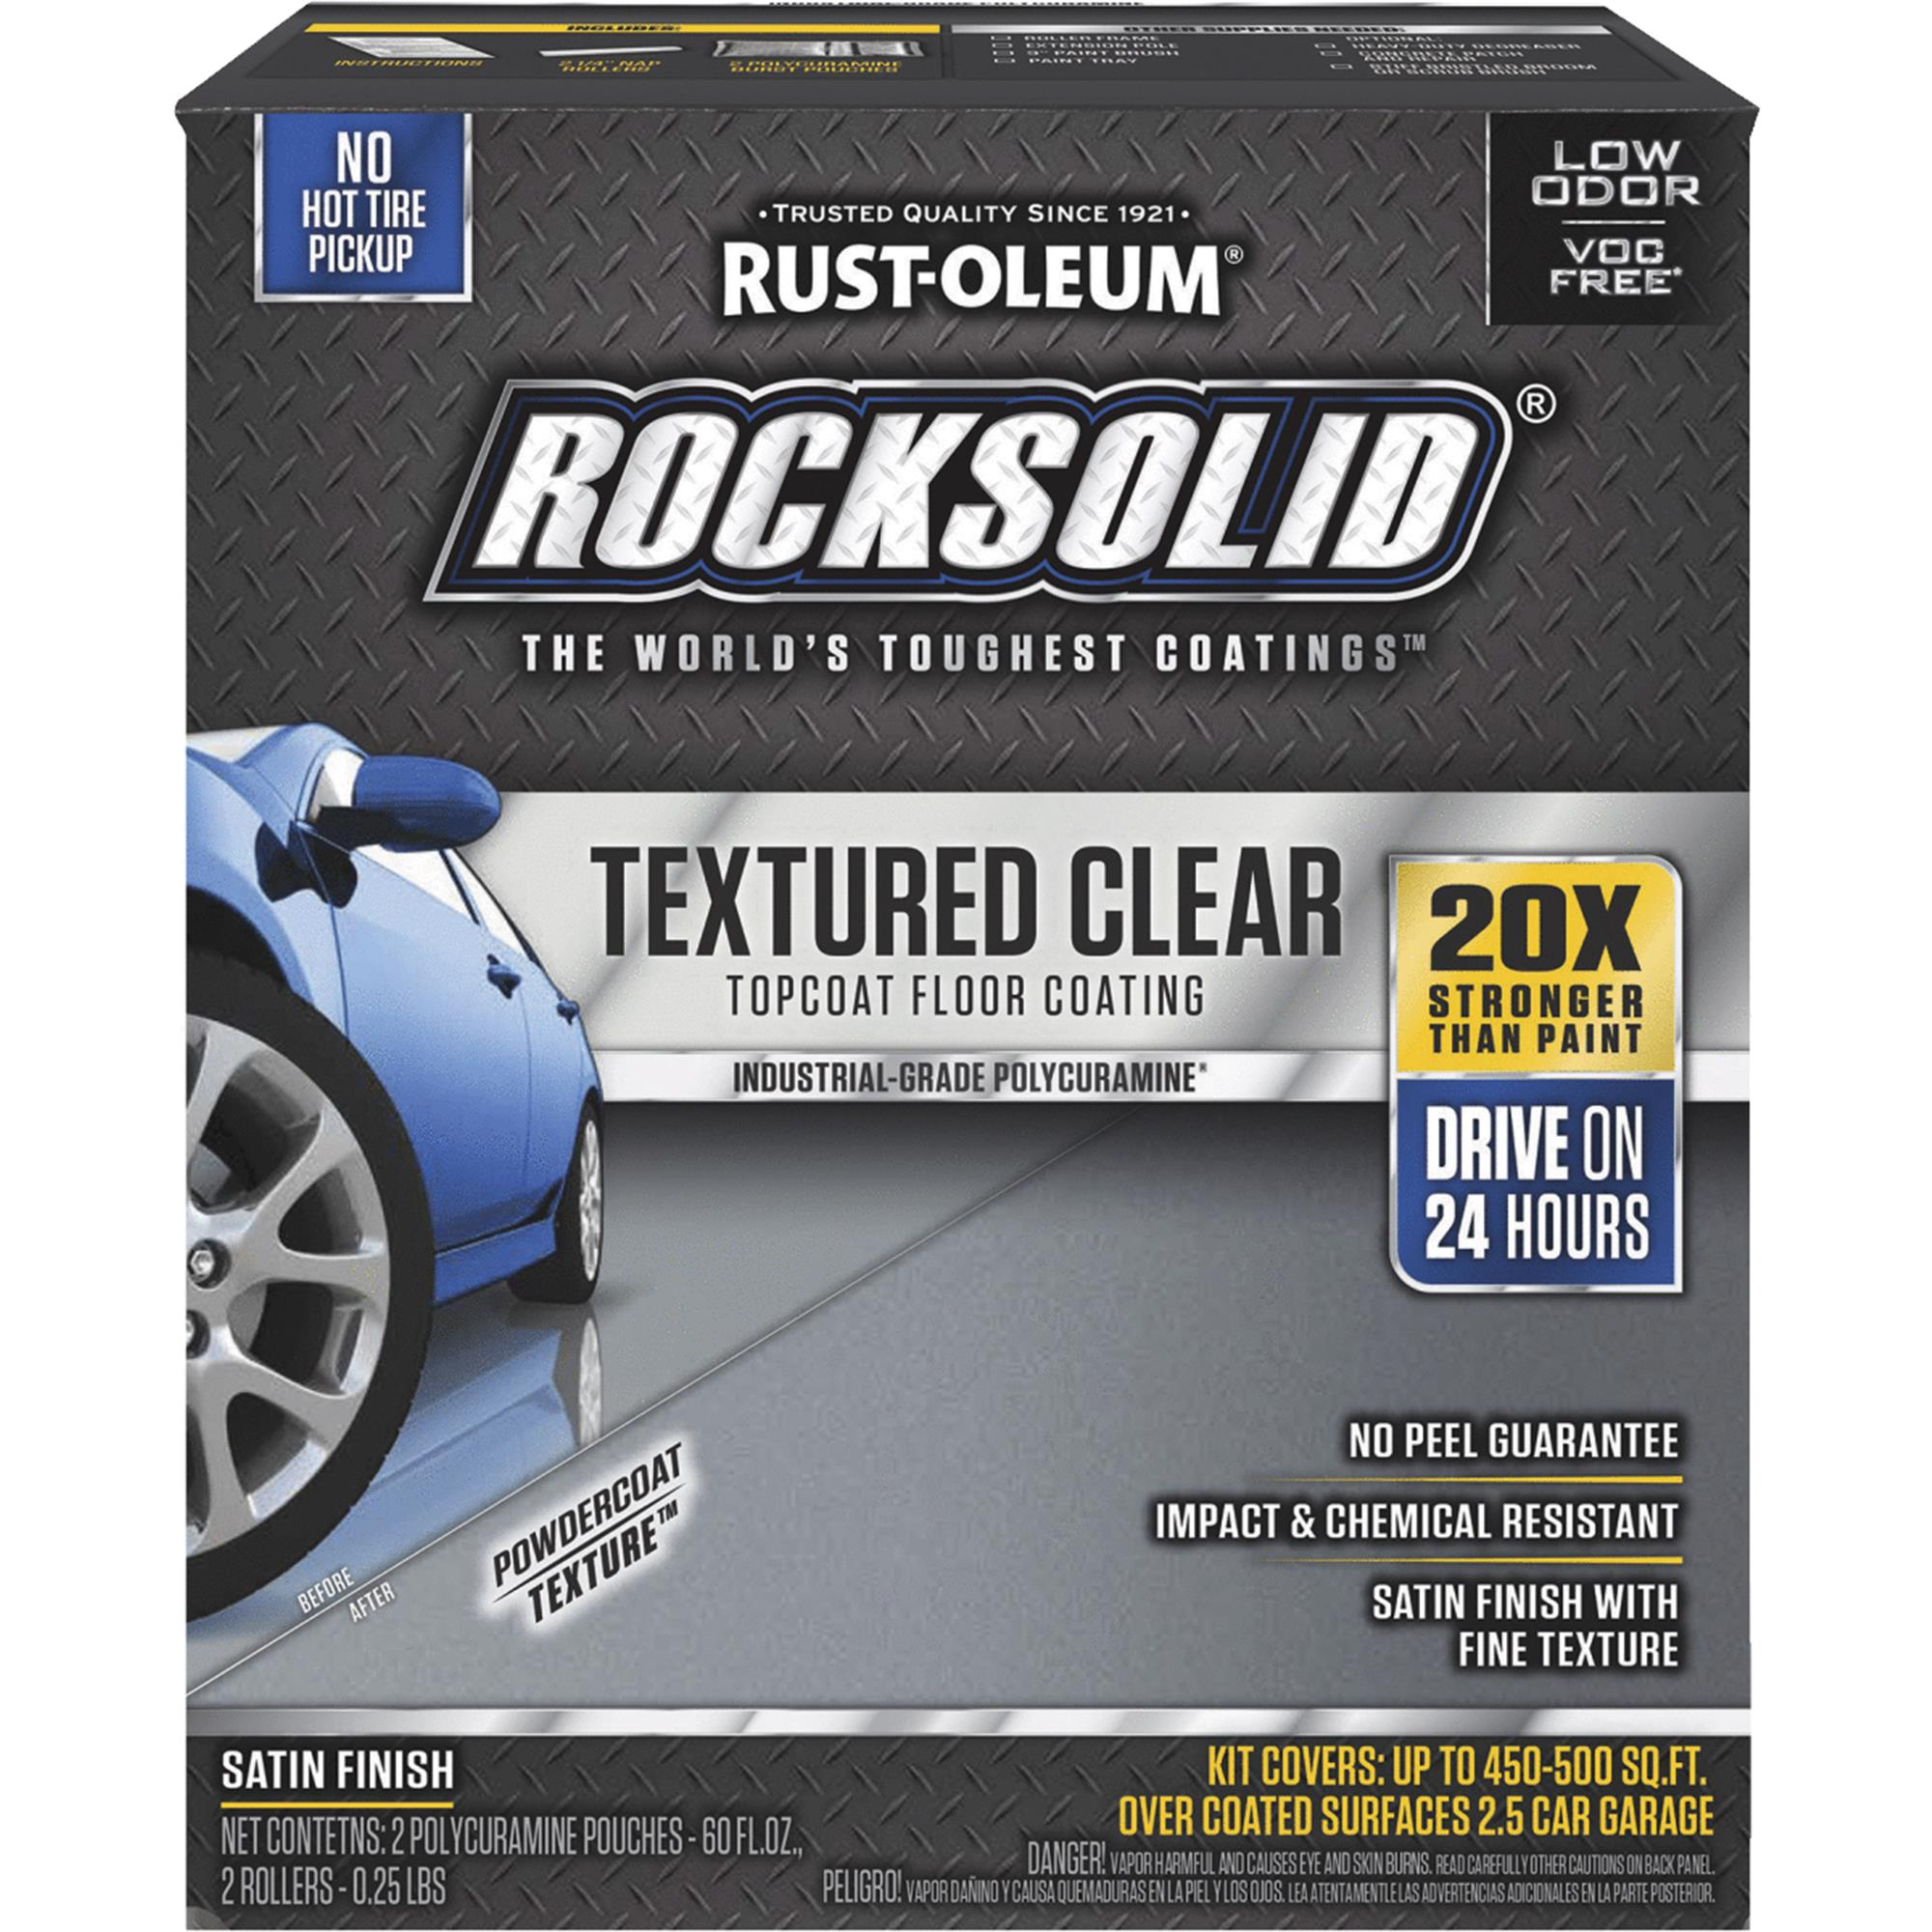 Rust-Oleum RockSolid Textured Clear Topcoat Floor Coating Kit